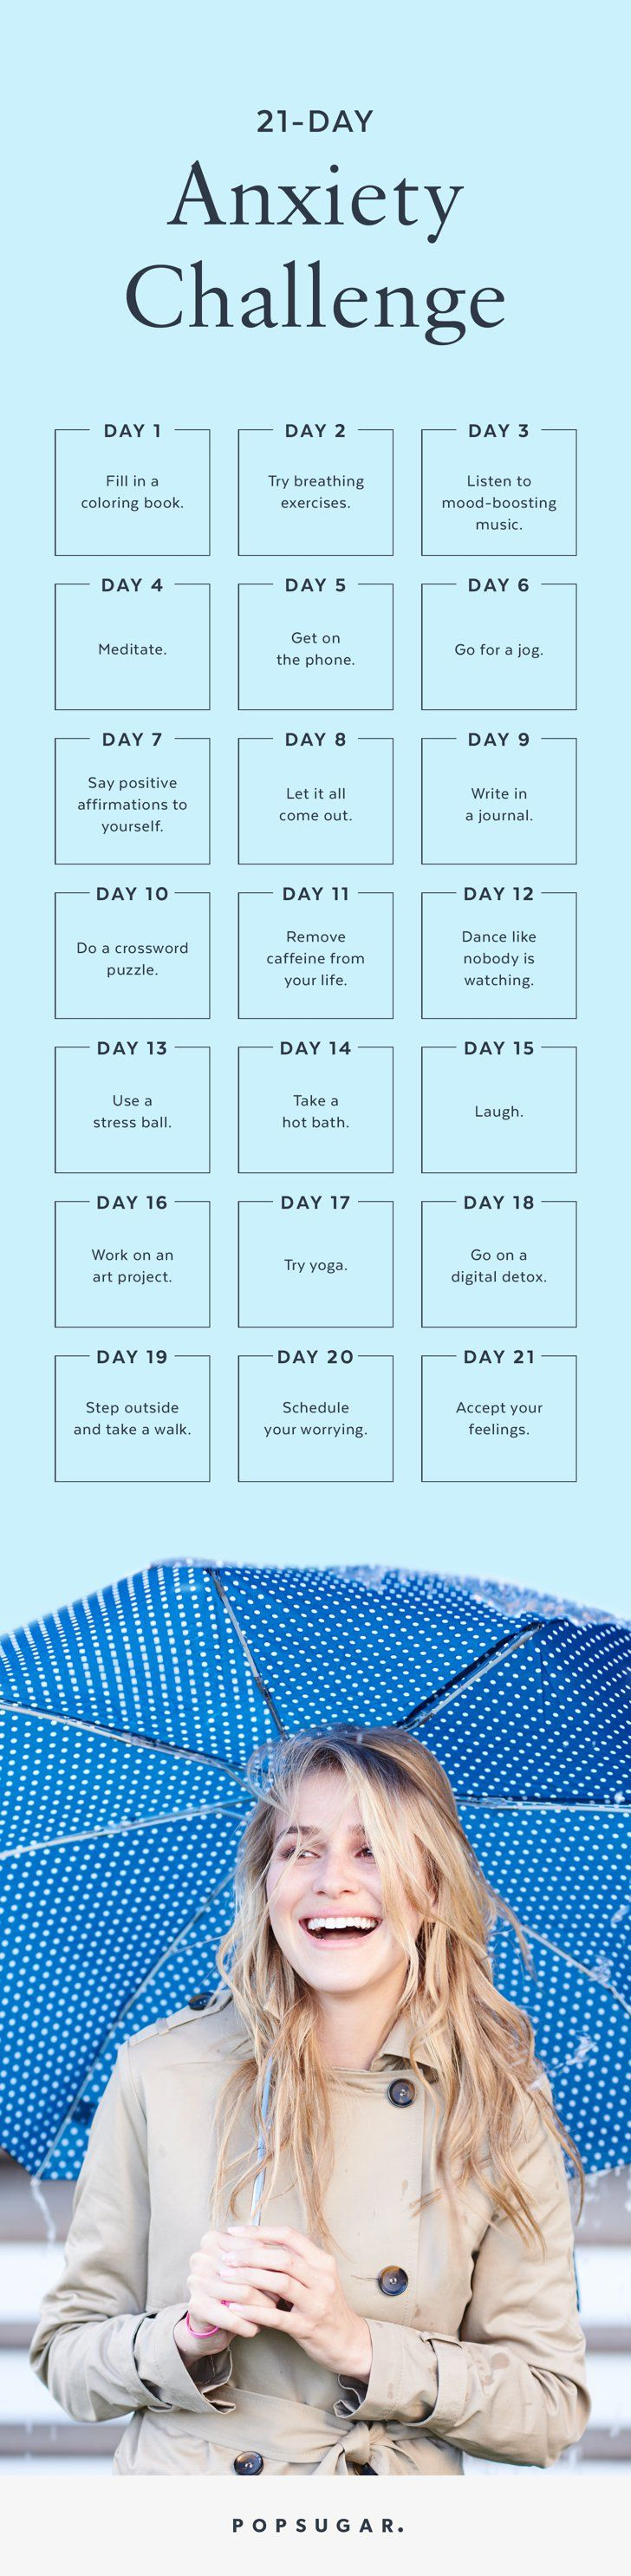 Pin for Later: The 21-Day Anxiety Challenge: Take Control of Your Nerves